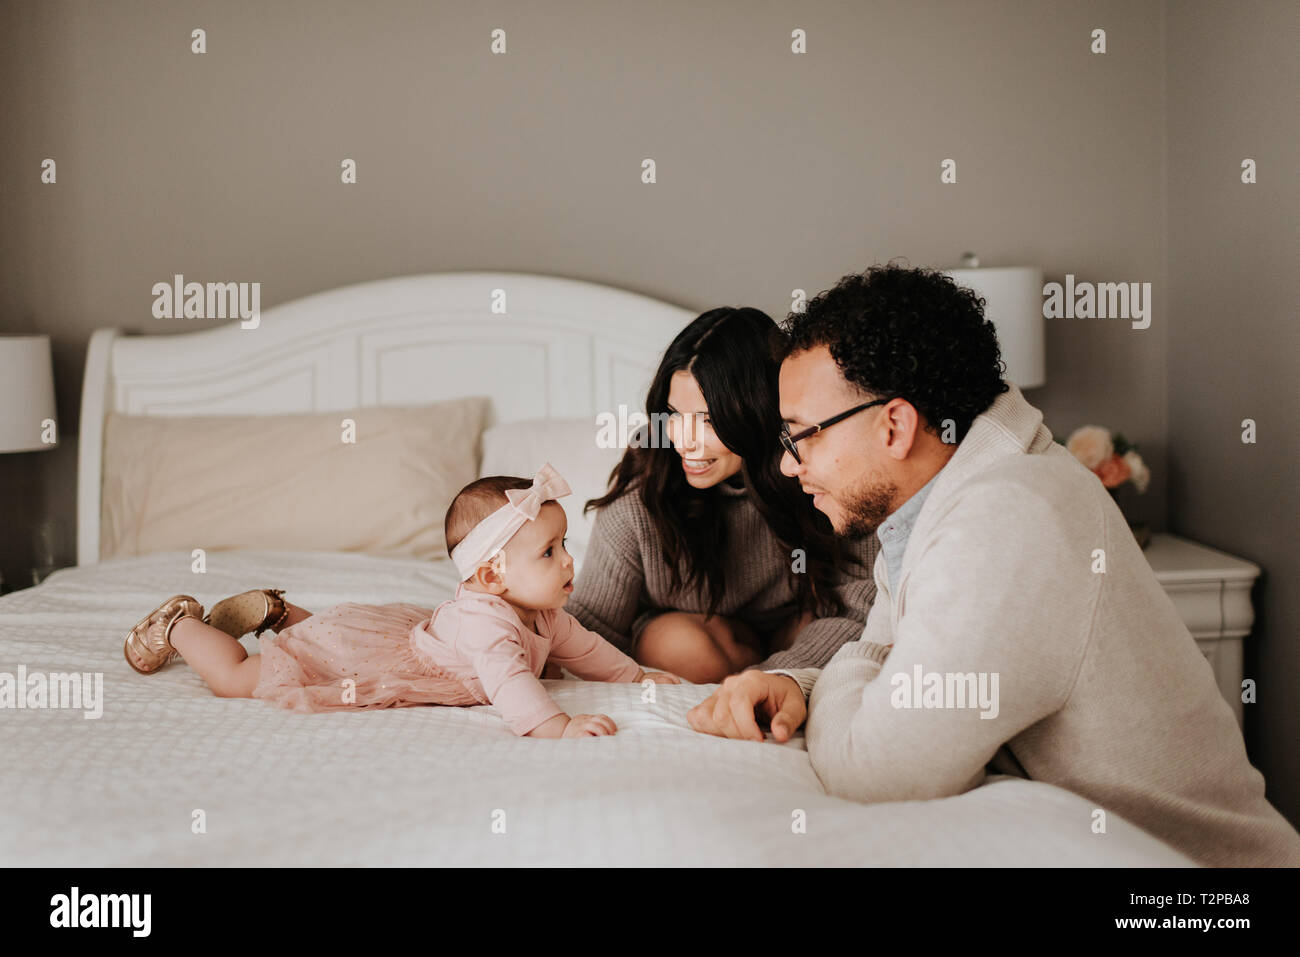 Couple with baby daughter on bed in bedroom - Stock Image